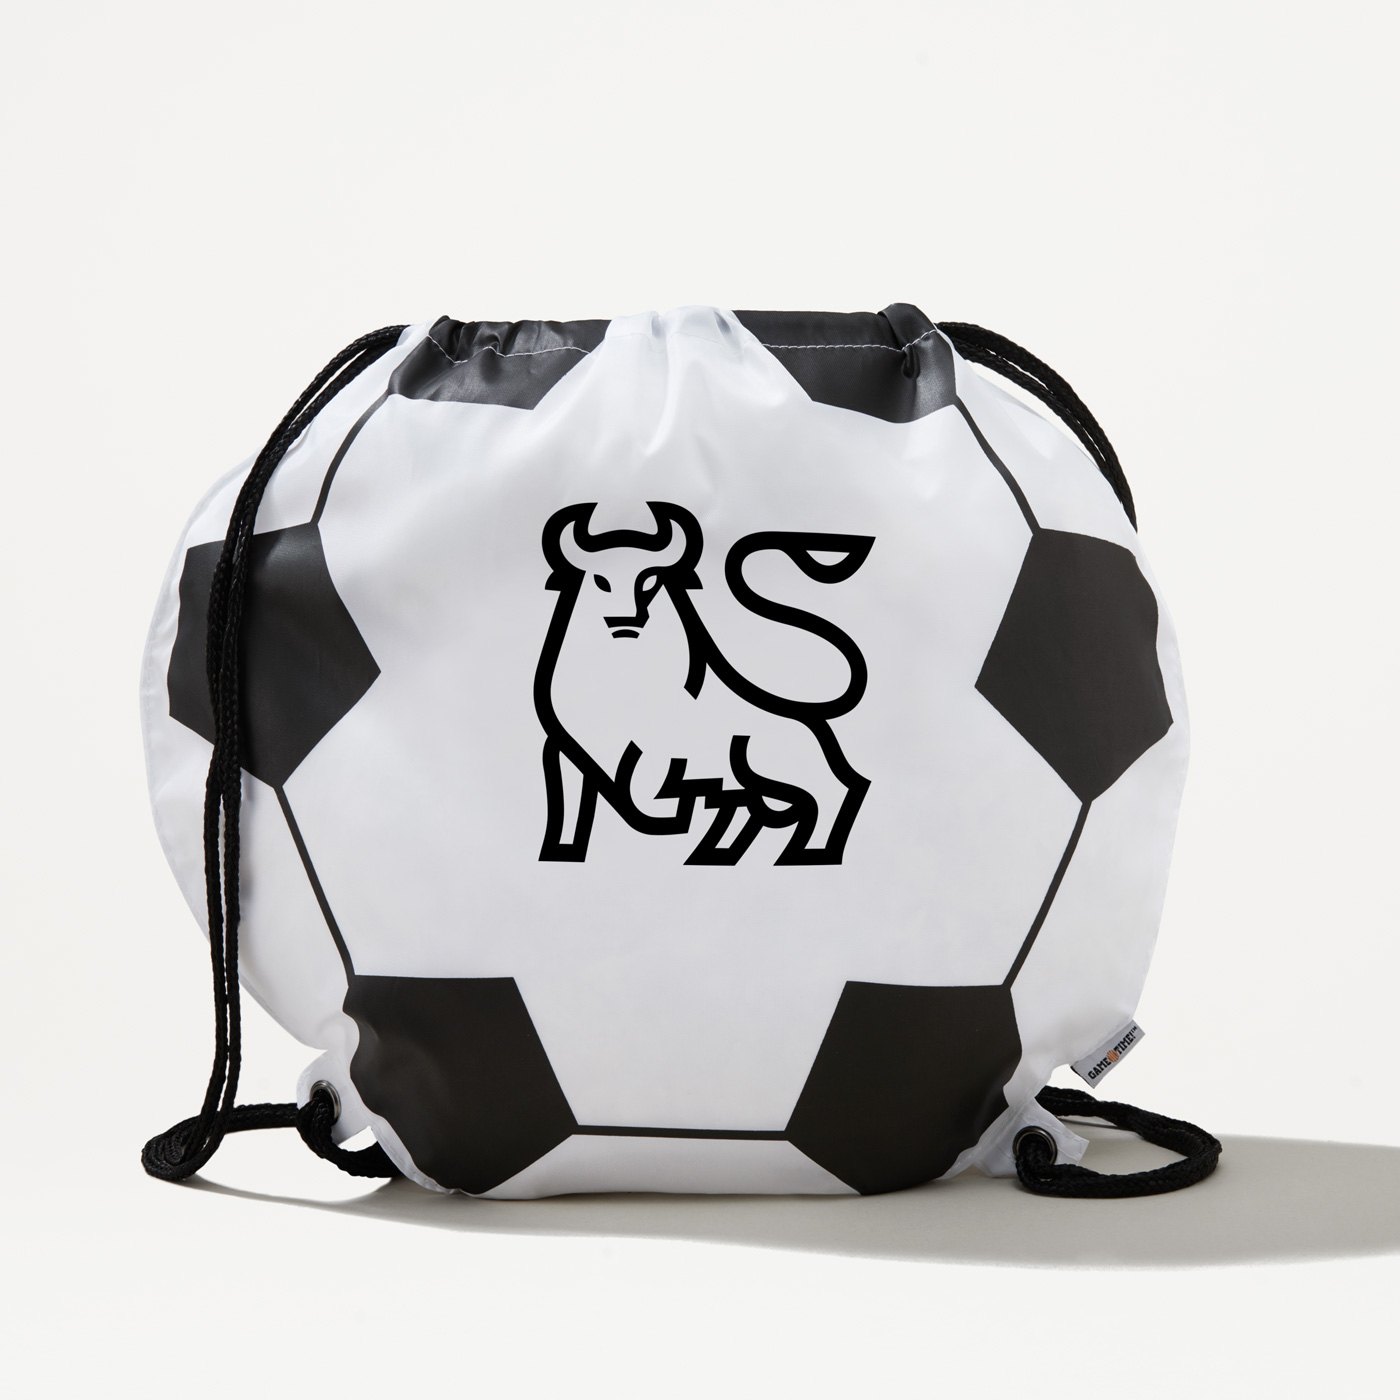 Enjoyable Bull Soccer Drawstring Bag Bank Of America Store Gmtry Best Dining Table And Chair Ideas Images Gmtryco